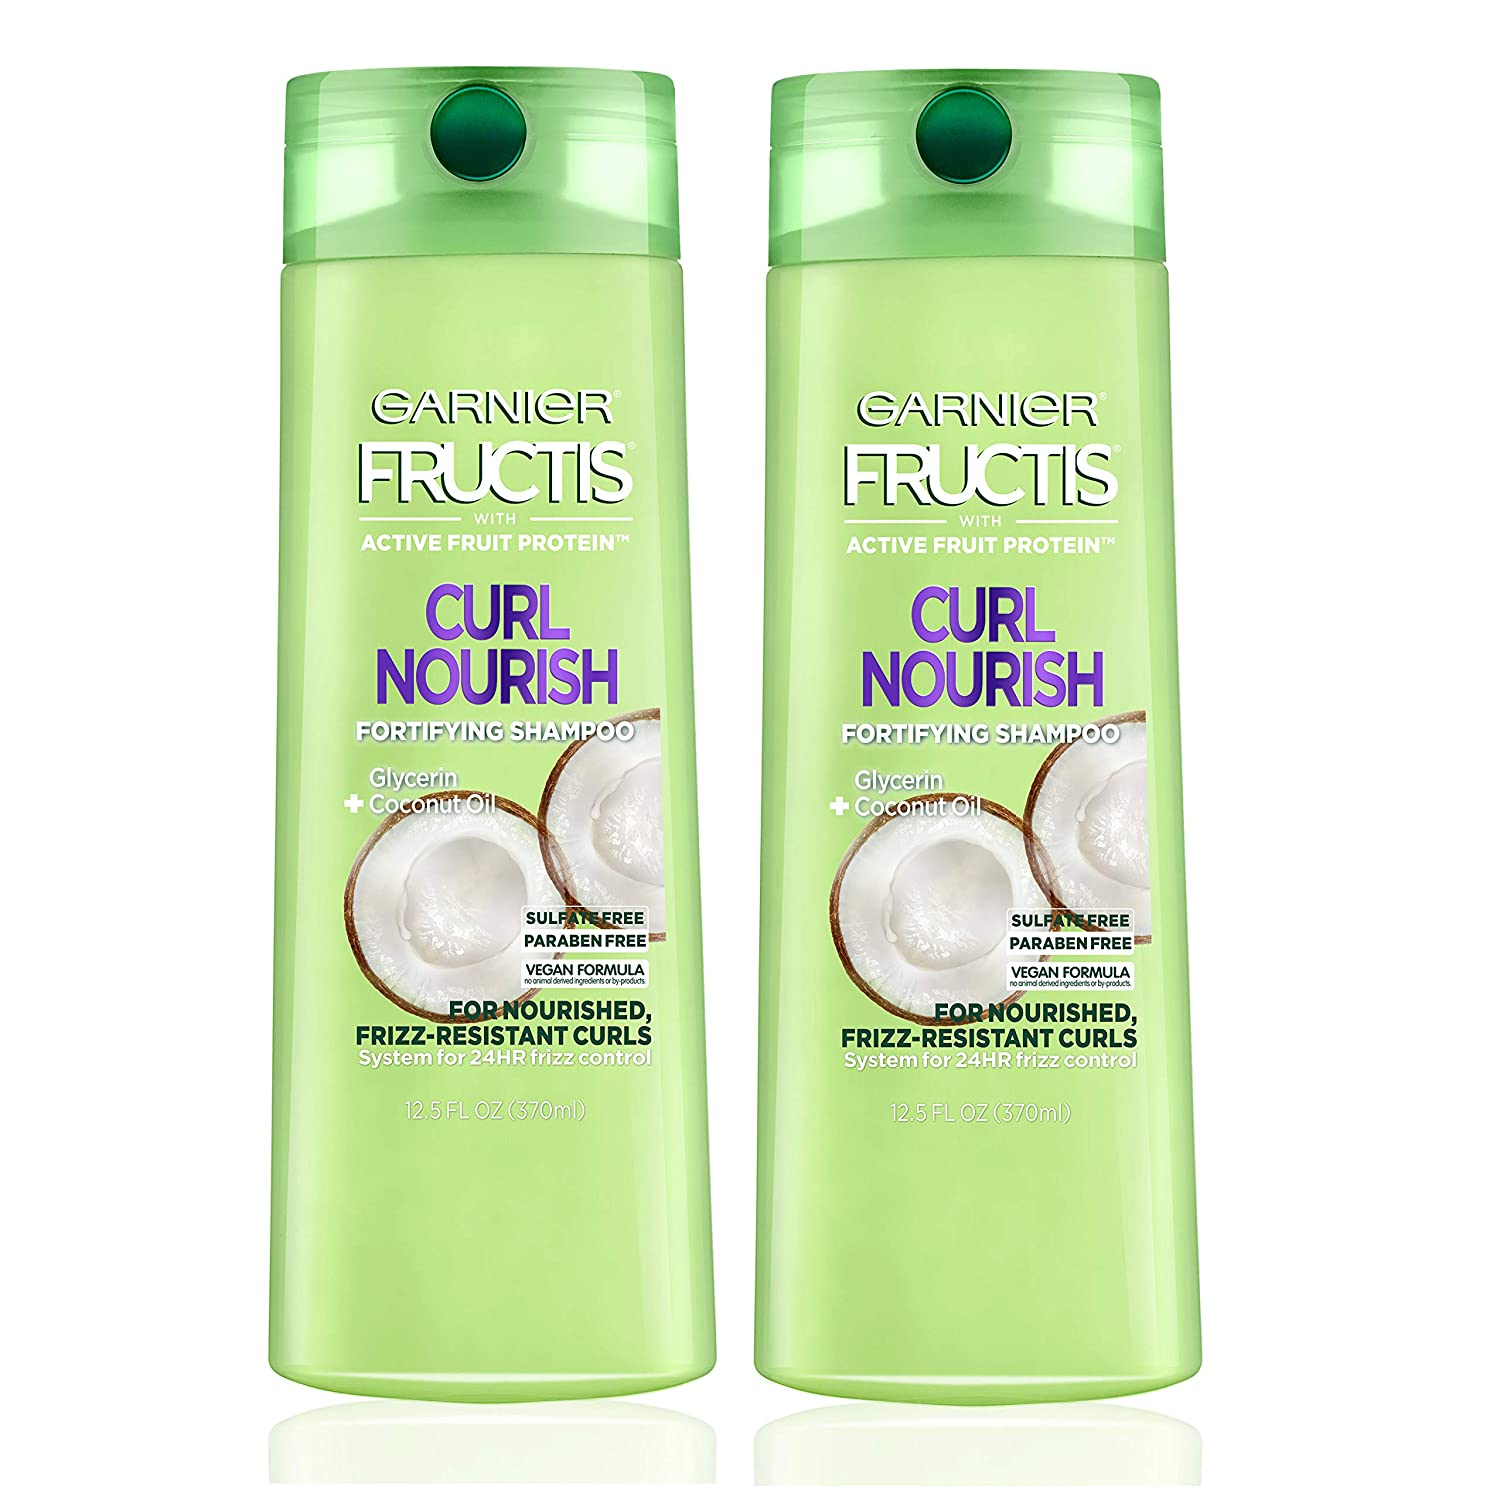 9df61b672a7f Garnier Fructis Curl Nourish Sulfate-Free and Silicone Free Shampoo made  with Coconut Oil and Glycerin...